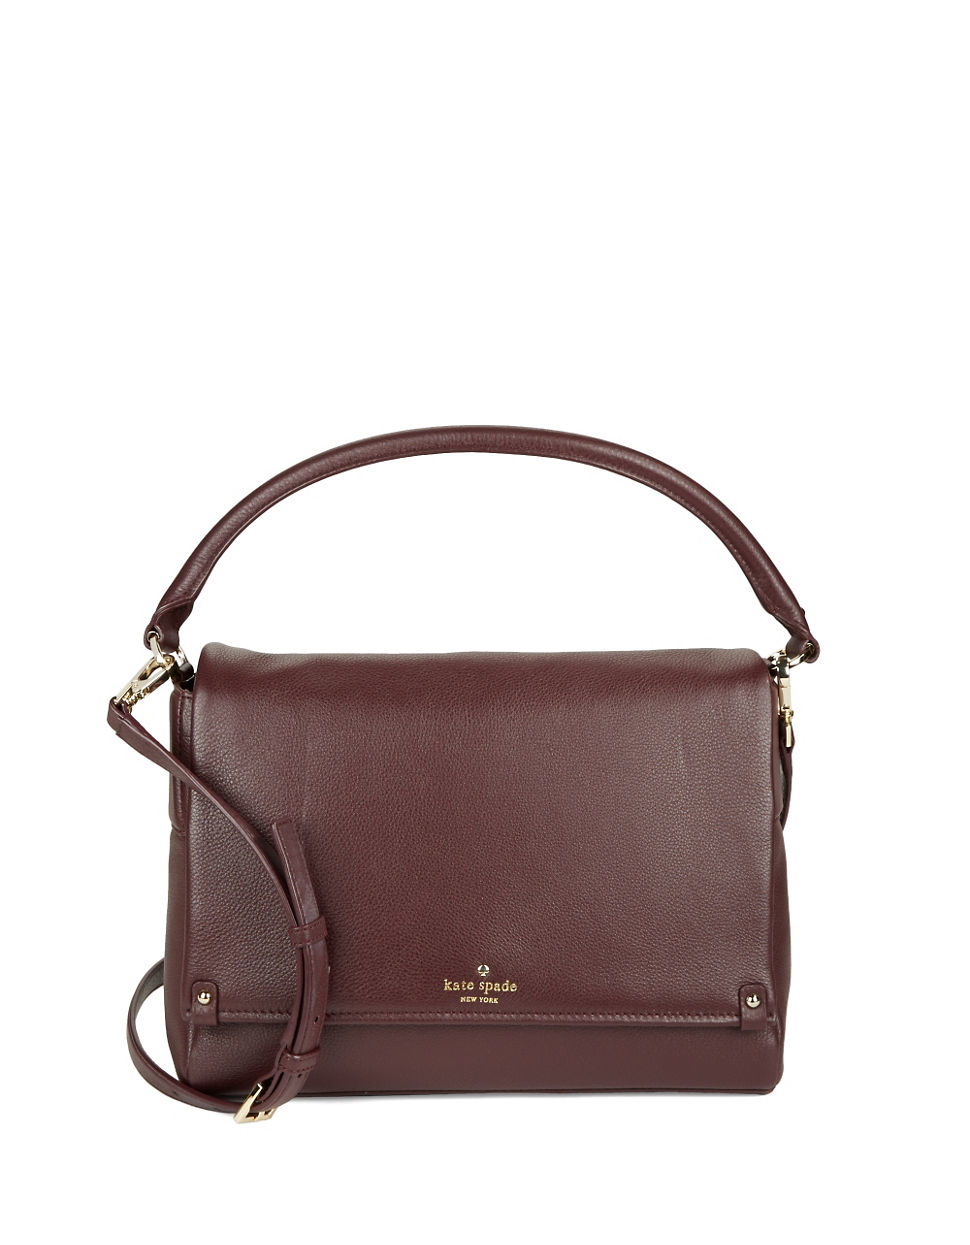 25b4a99fc210 Kate spade new york Summit Court Shoulder Bag in Purple